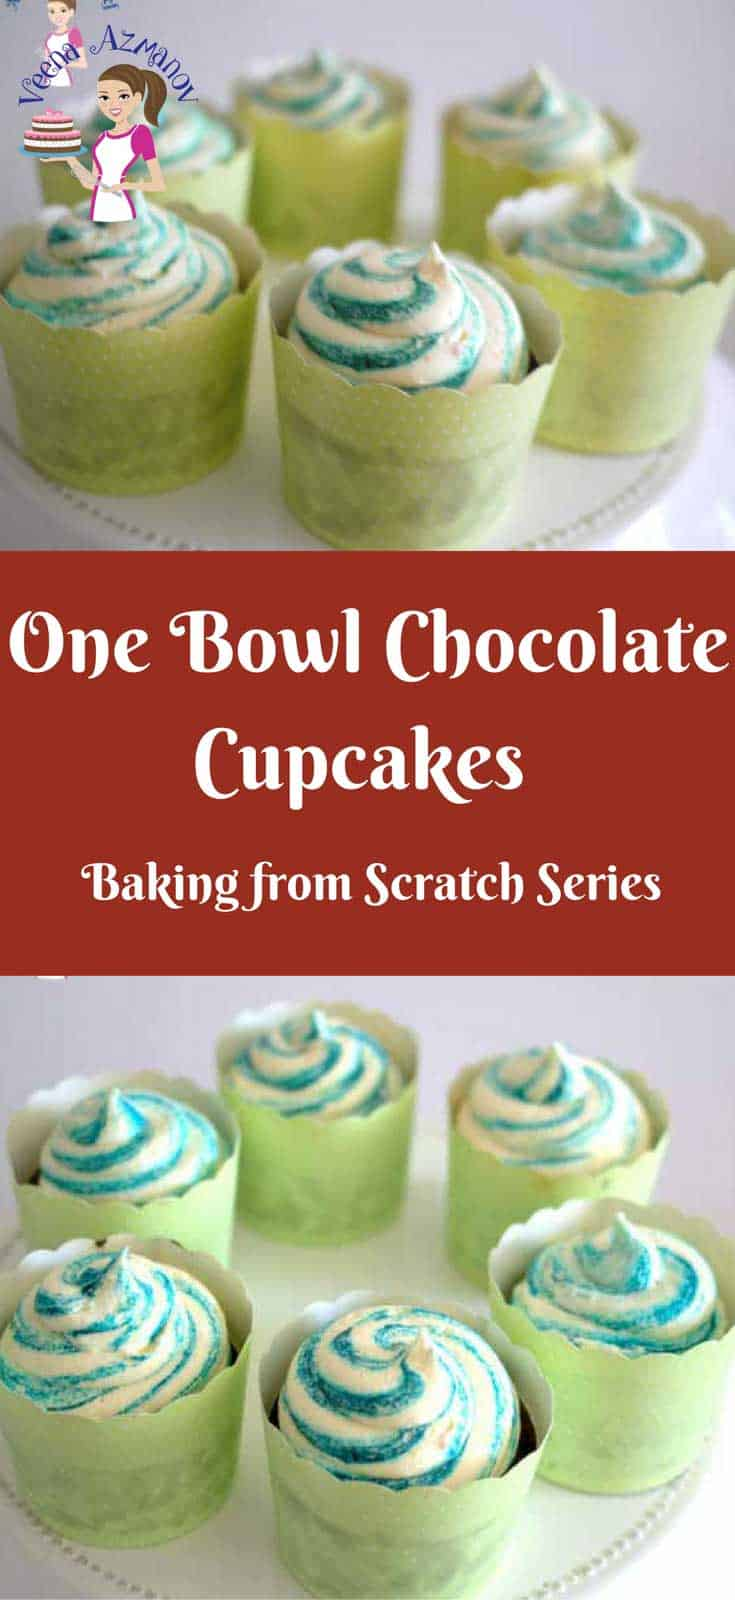 Quick and Easy One Bowl Chocolate Cupcakes are soft moist and delicious. They are a great treat for a simple evening snack, kids play date treat or decorated beautifully for party celebration. These also make a great project for kids activities.